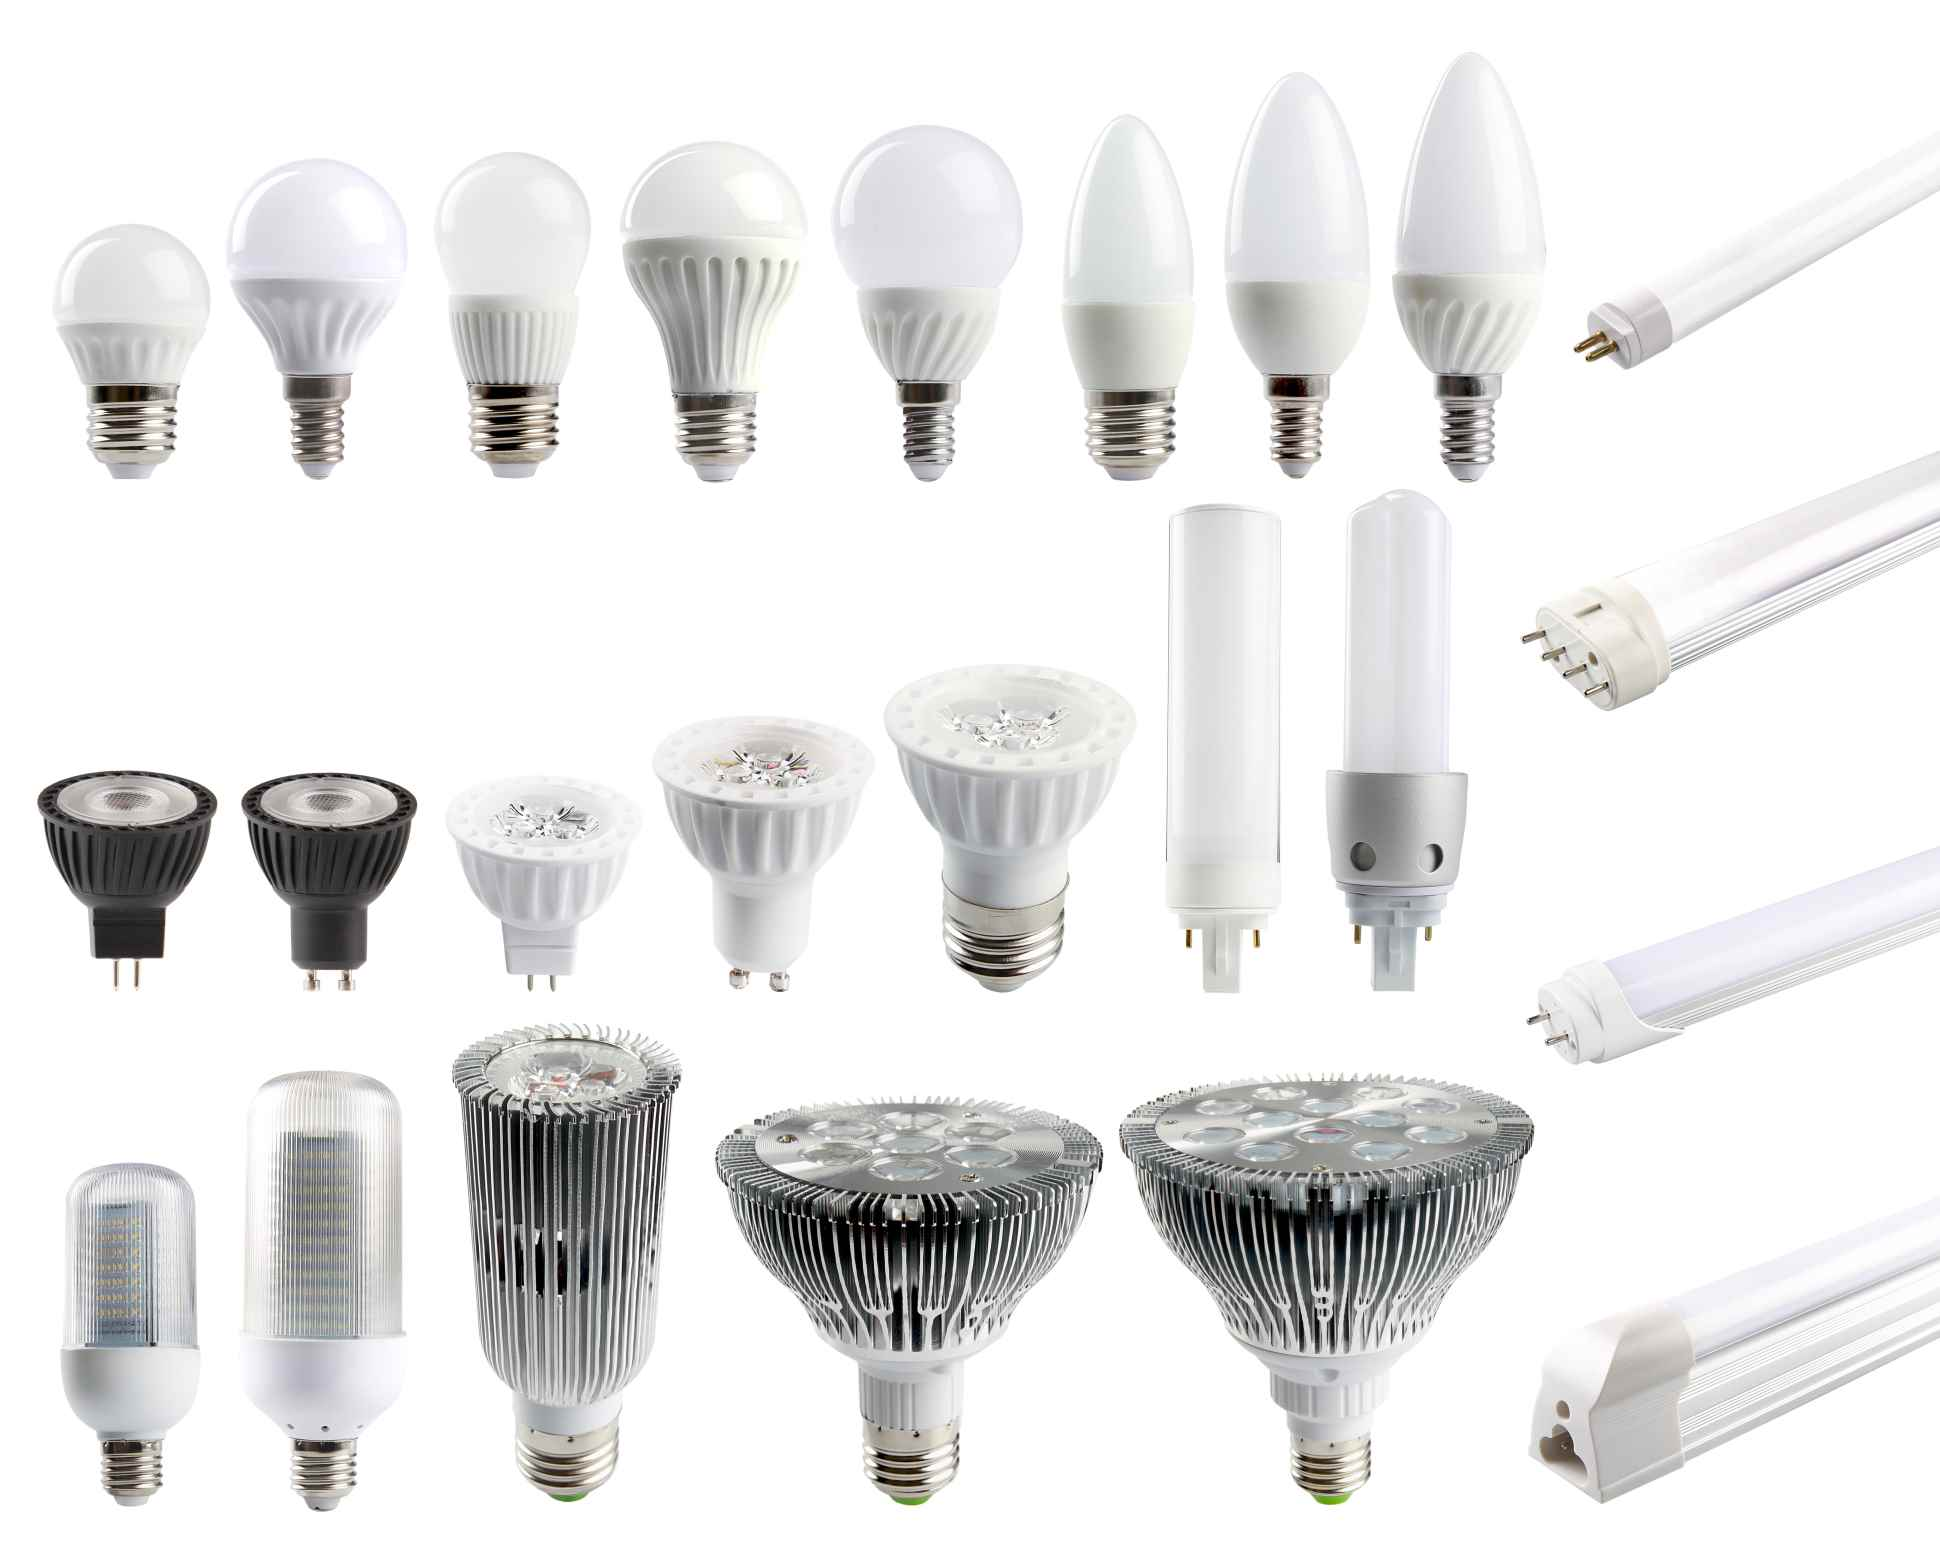 Buying Guide for LED Bulbs